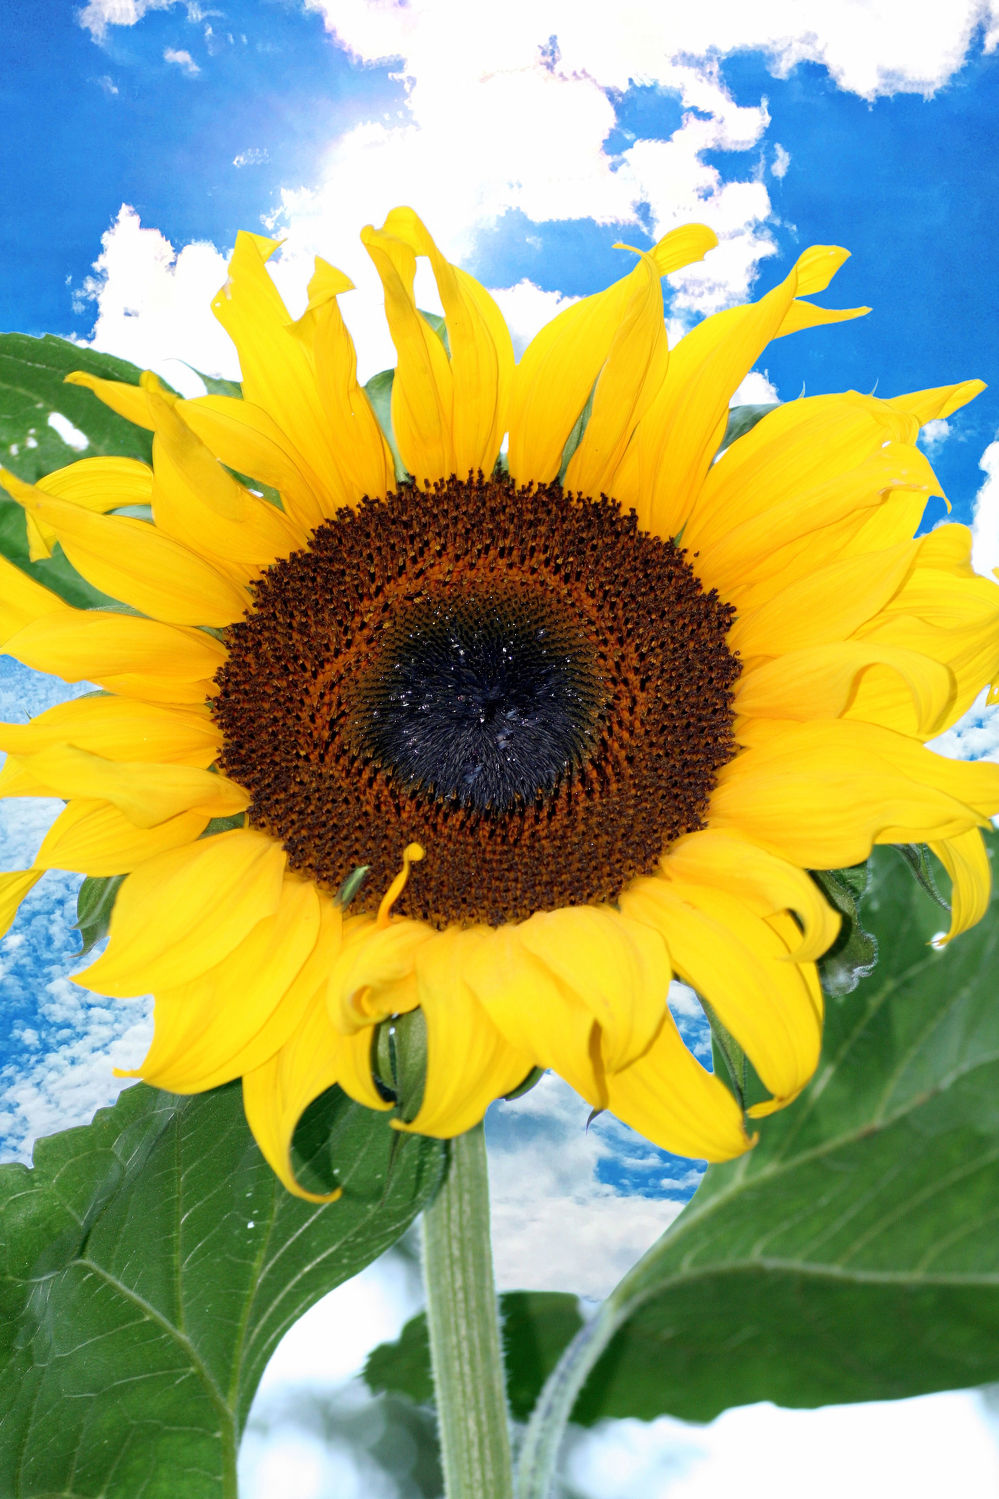 Bild mit Farben, Gelb, Gegenstände, Natur, Pflanzen, Lebensmittel, Essen, Blumen, Korbblütler, Sonnenblumen, Blume, Flower, Flowers, Sonnenblume, Sunflower, Sunflowers, Helianthus annuus, Helianthus, Asteraceae